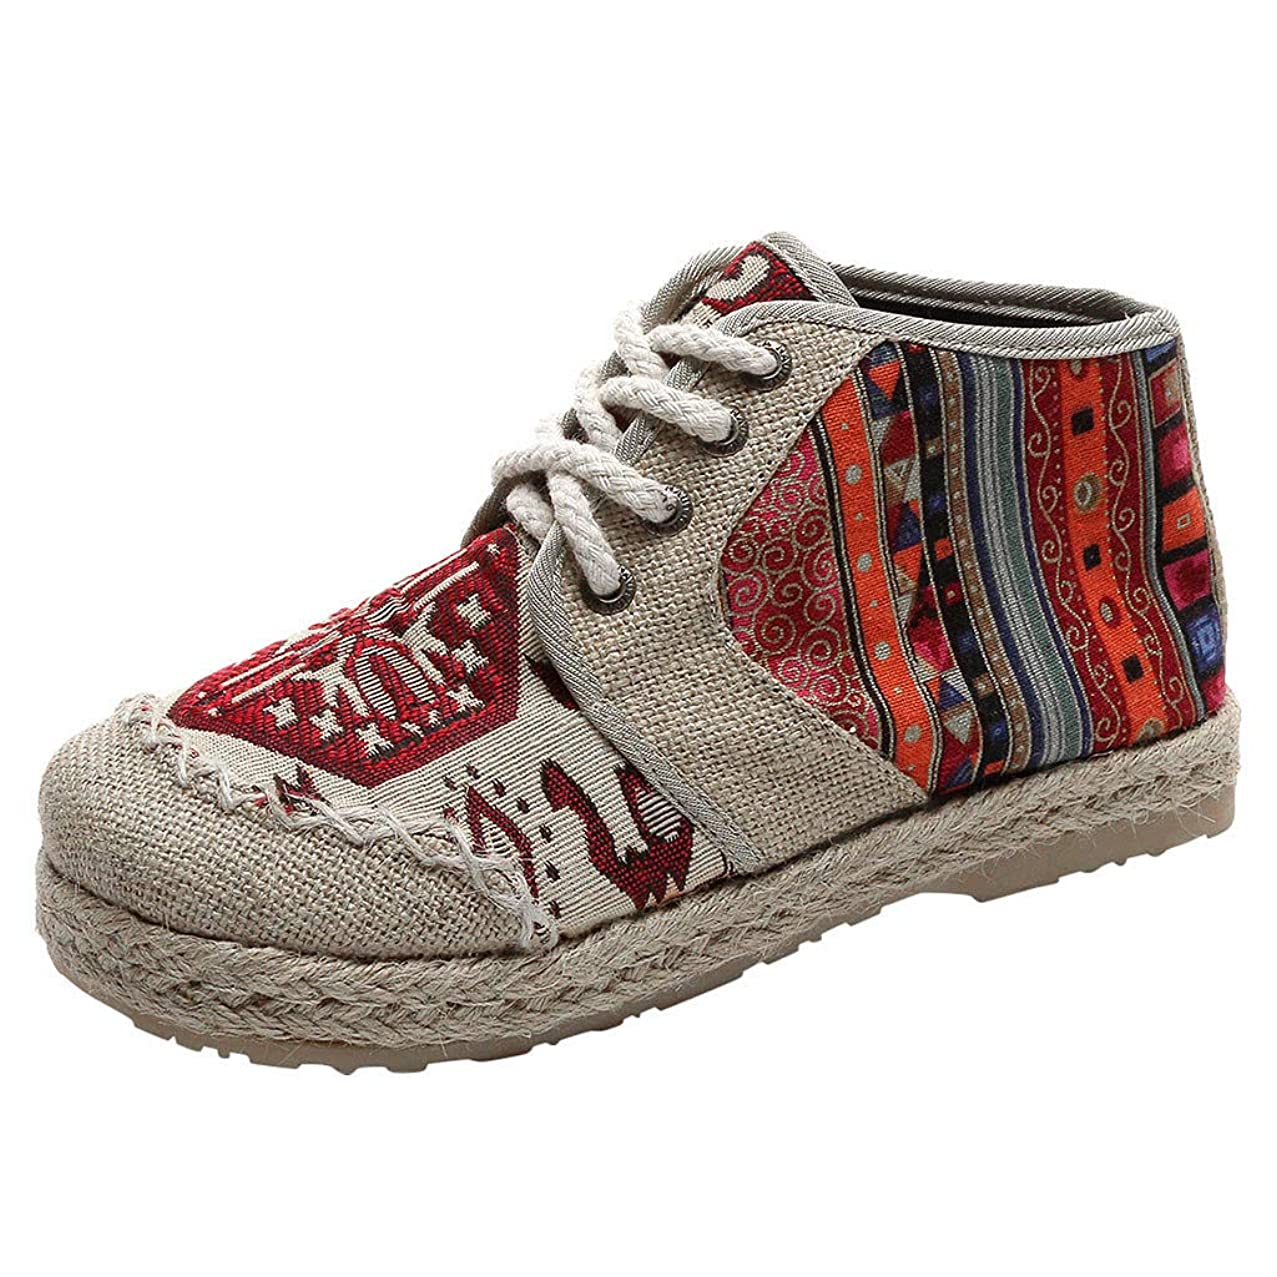 Mosunx Clothing High Top Casual Sneakers Women, 【Lace Up Espadrilles 】 Lightweight Breathable Boho Printed Non-Slip Flat Canvas Shoes